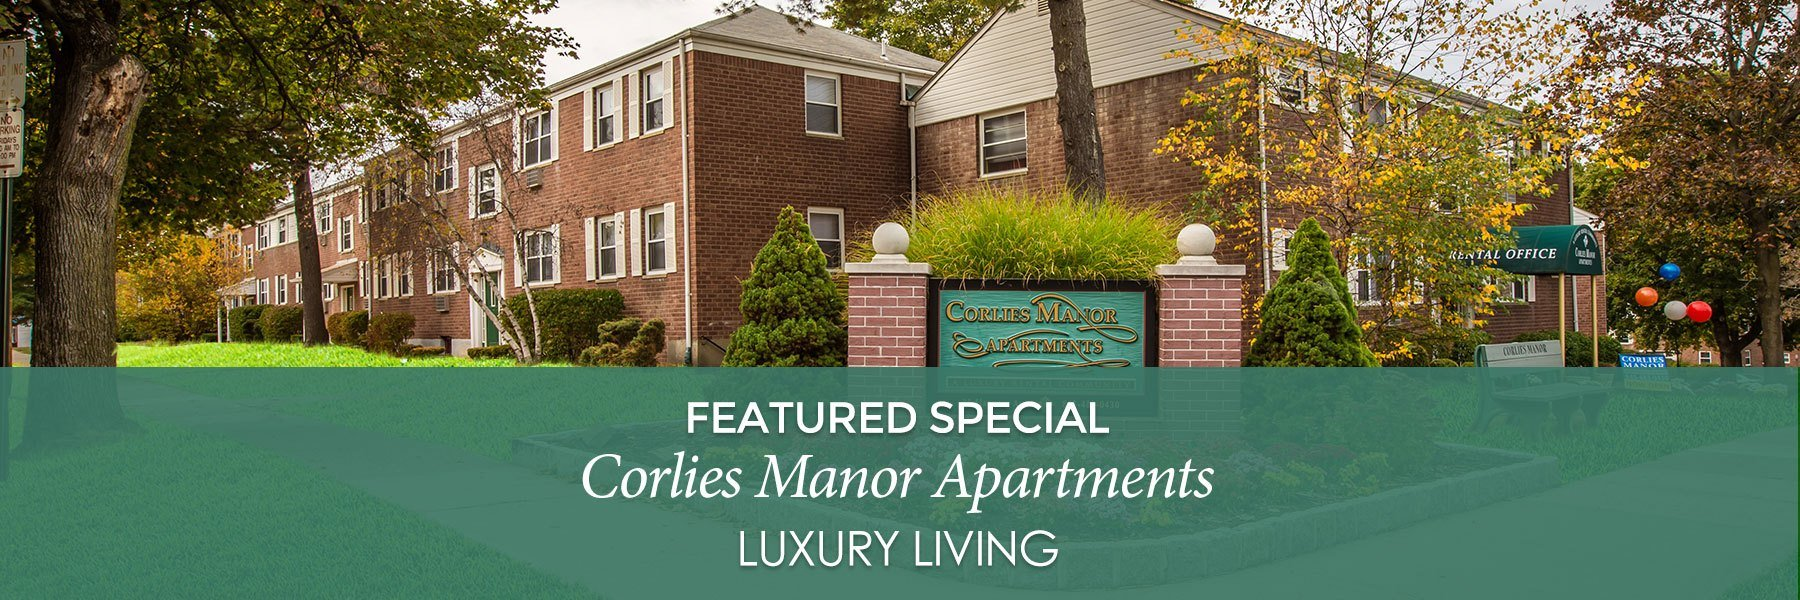 Corlies Manor Apartments For Rent in Poughkeepsie, NY Specials